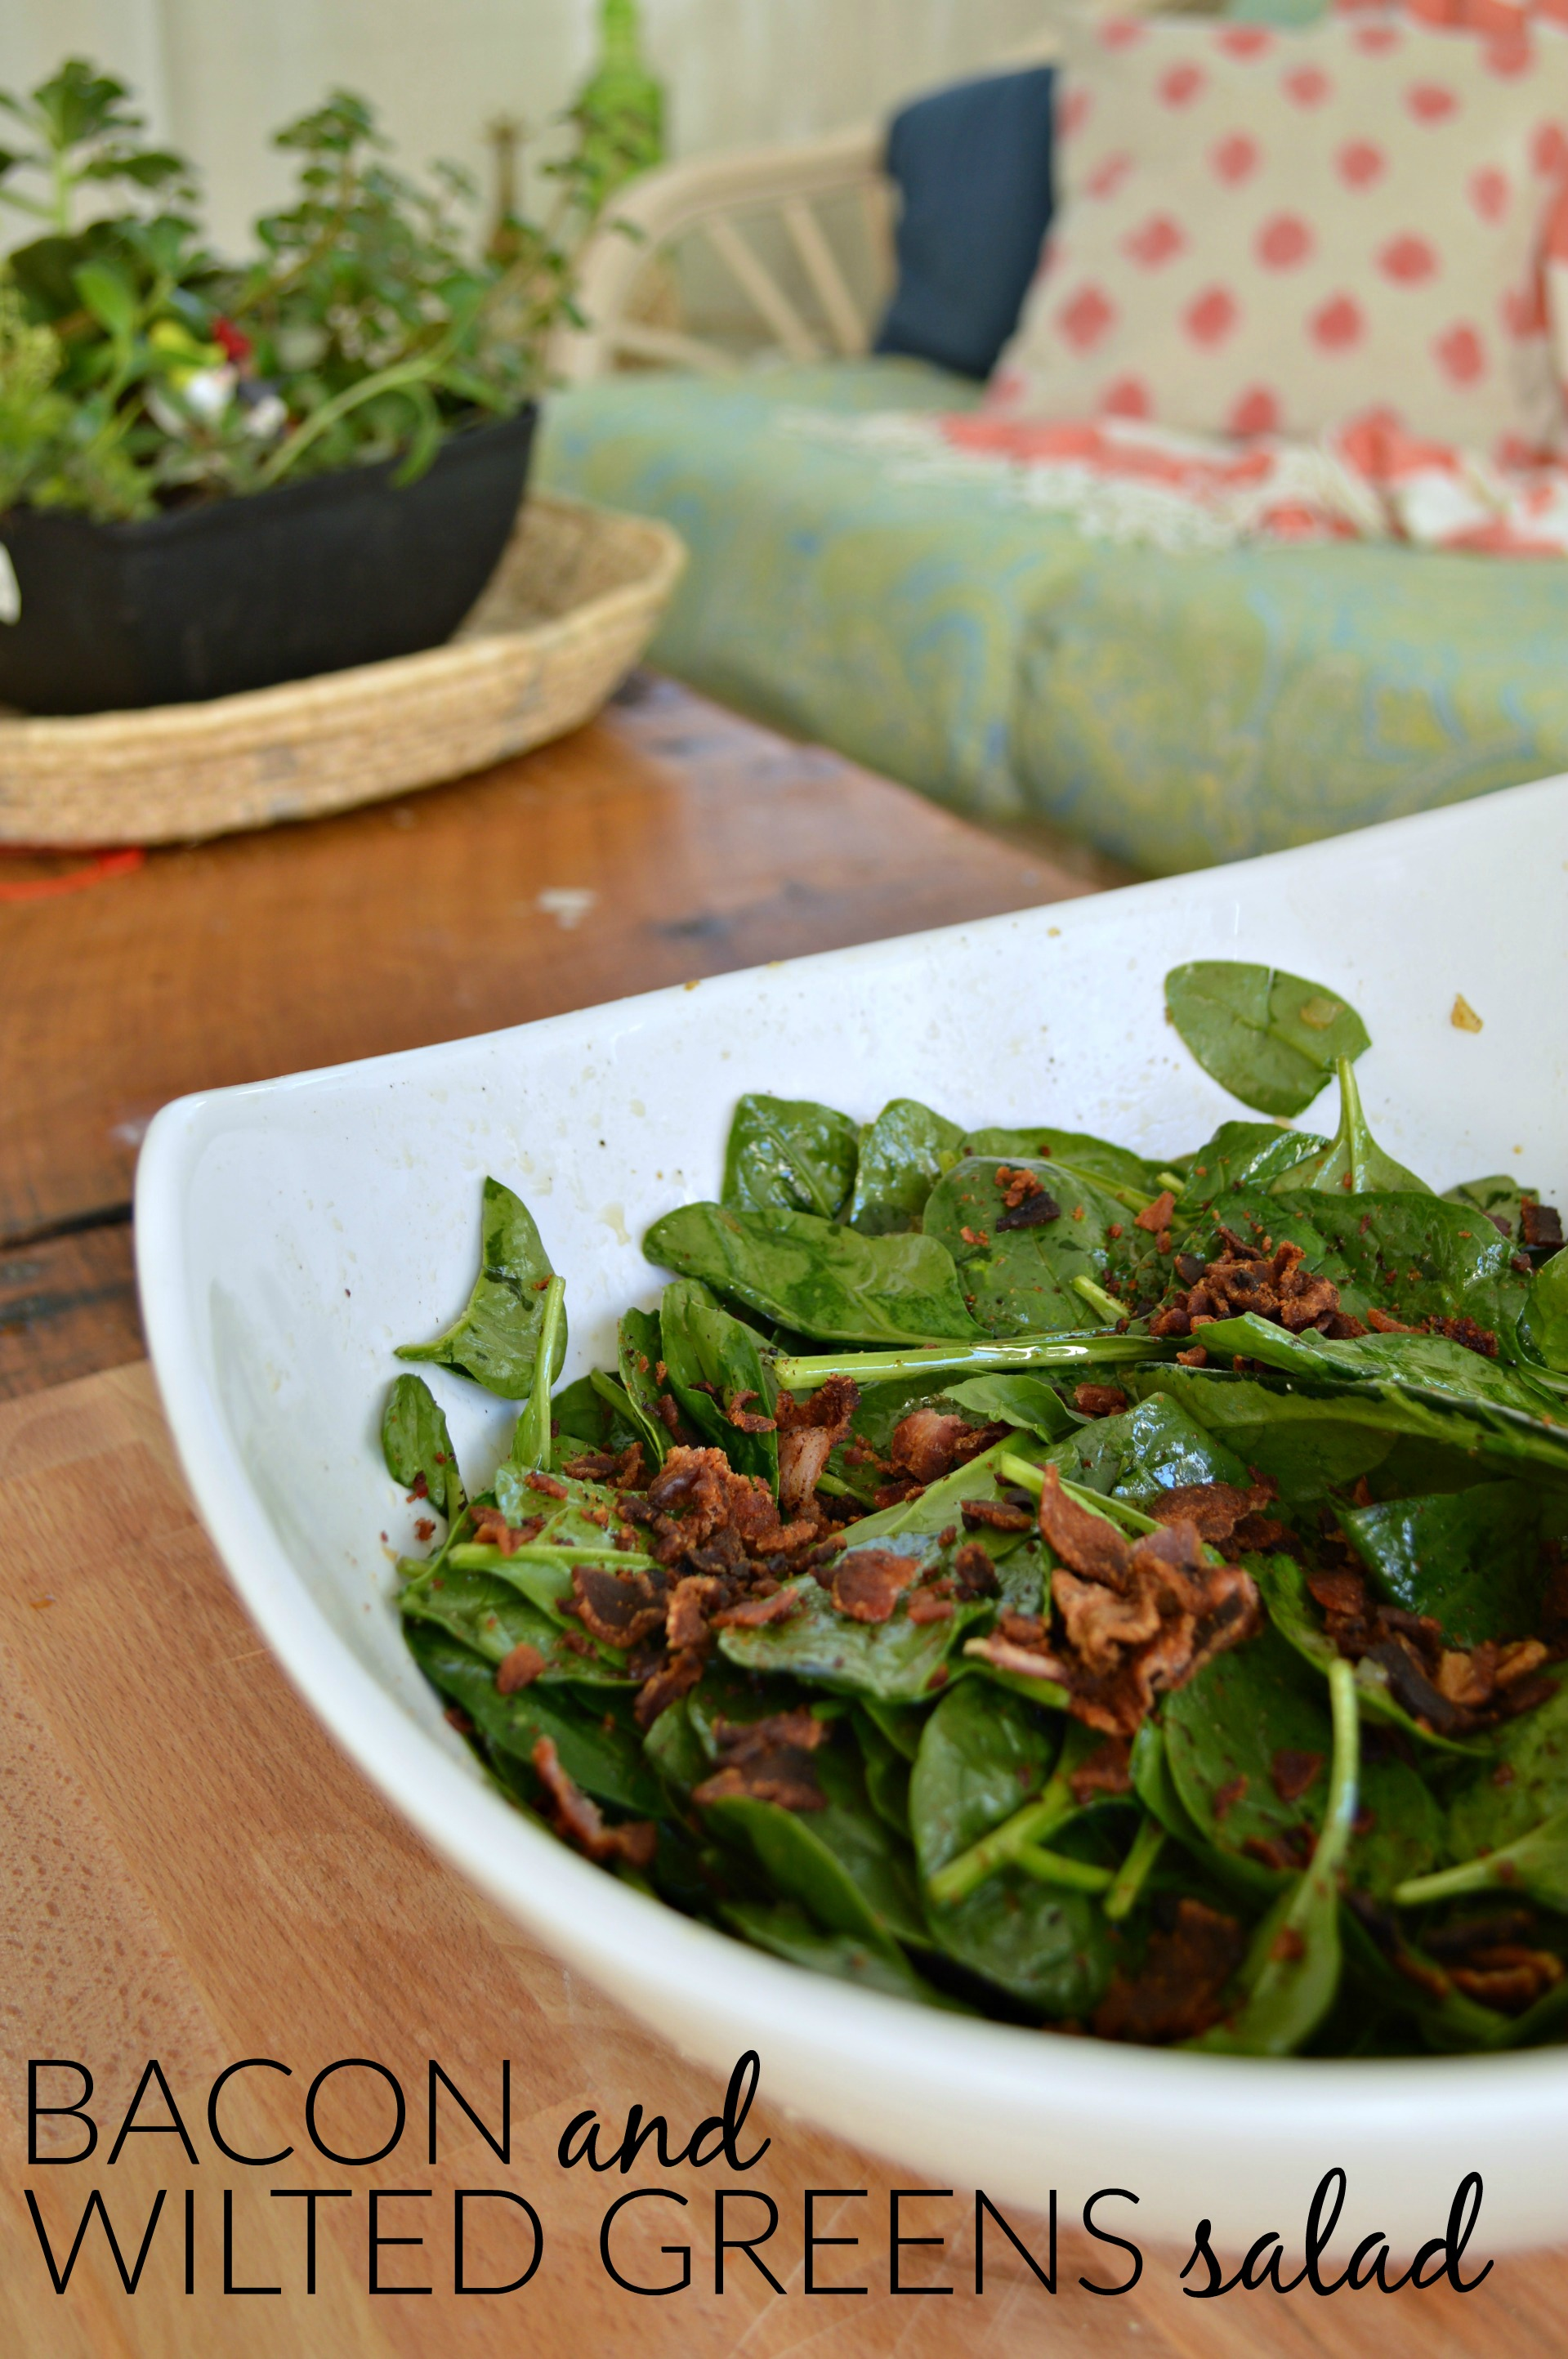 BACON AND WILTED GREENS SALAD